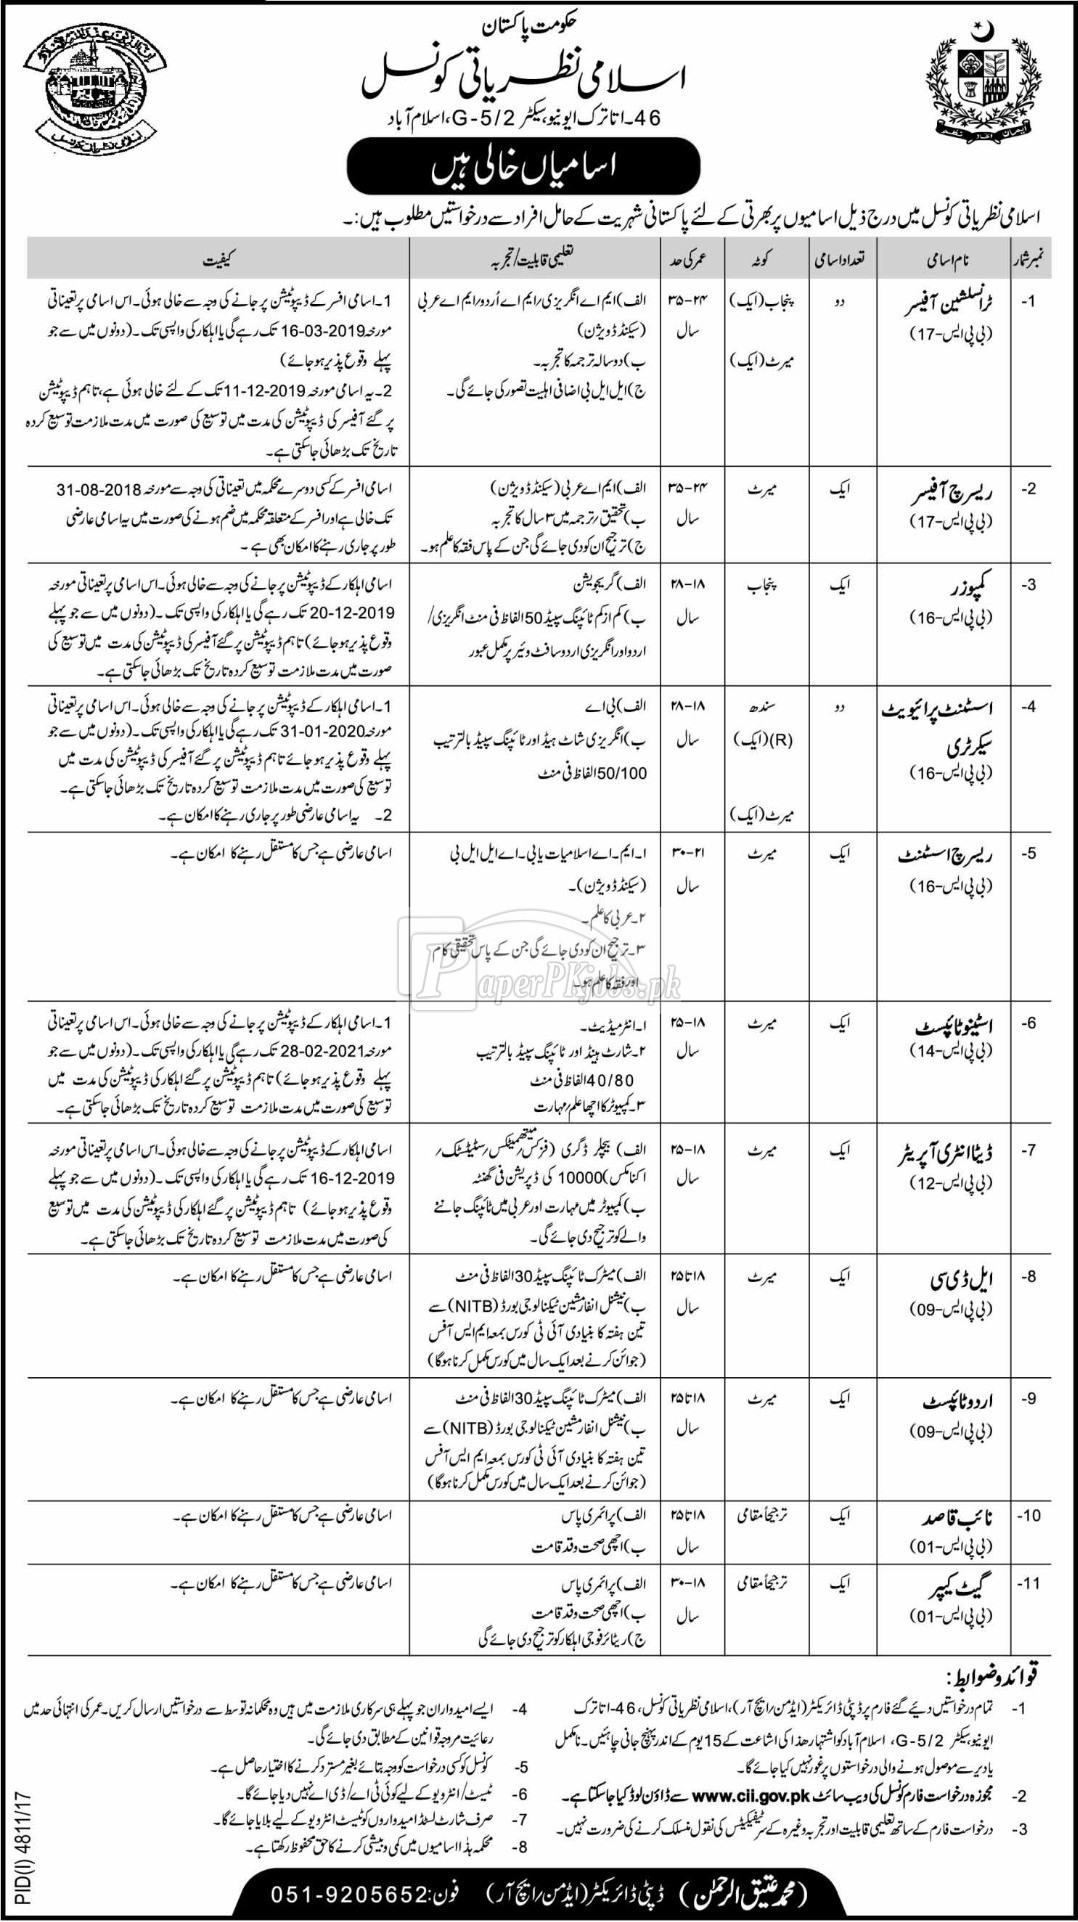 Council of Islamic Ideology Government of Pakistan Jobs 2018